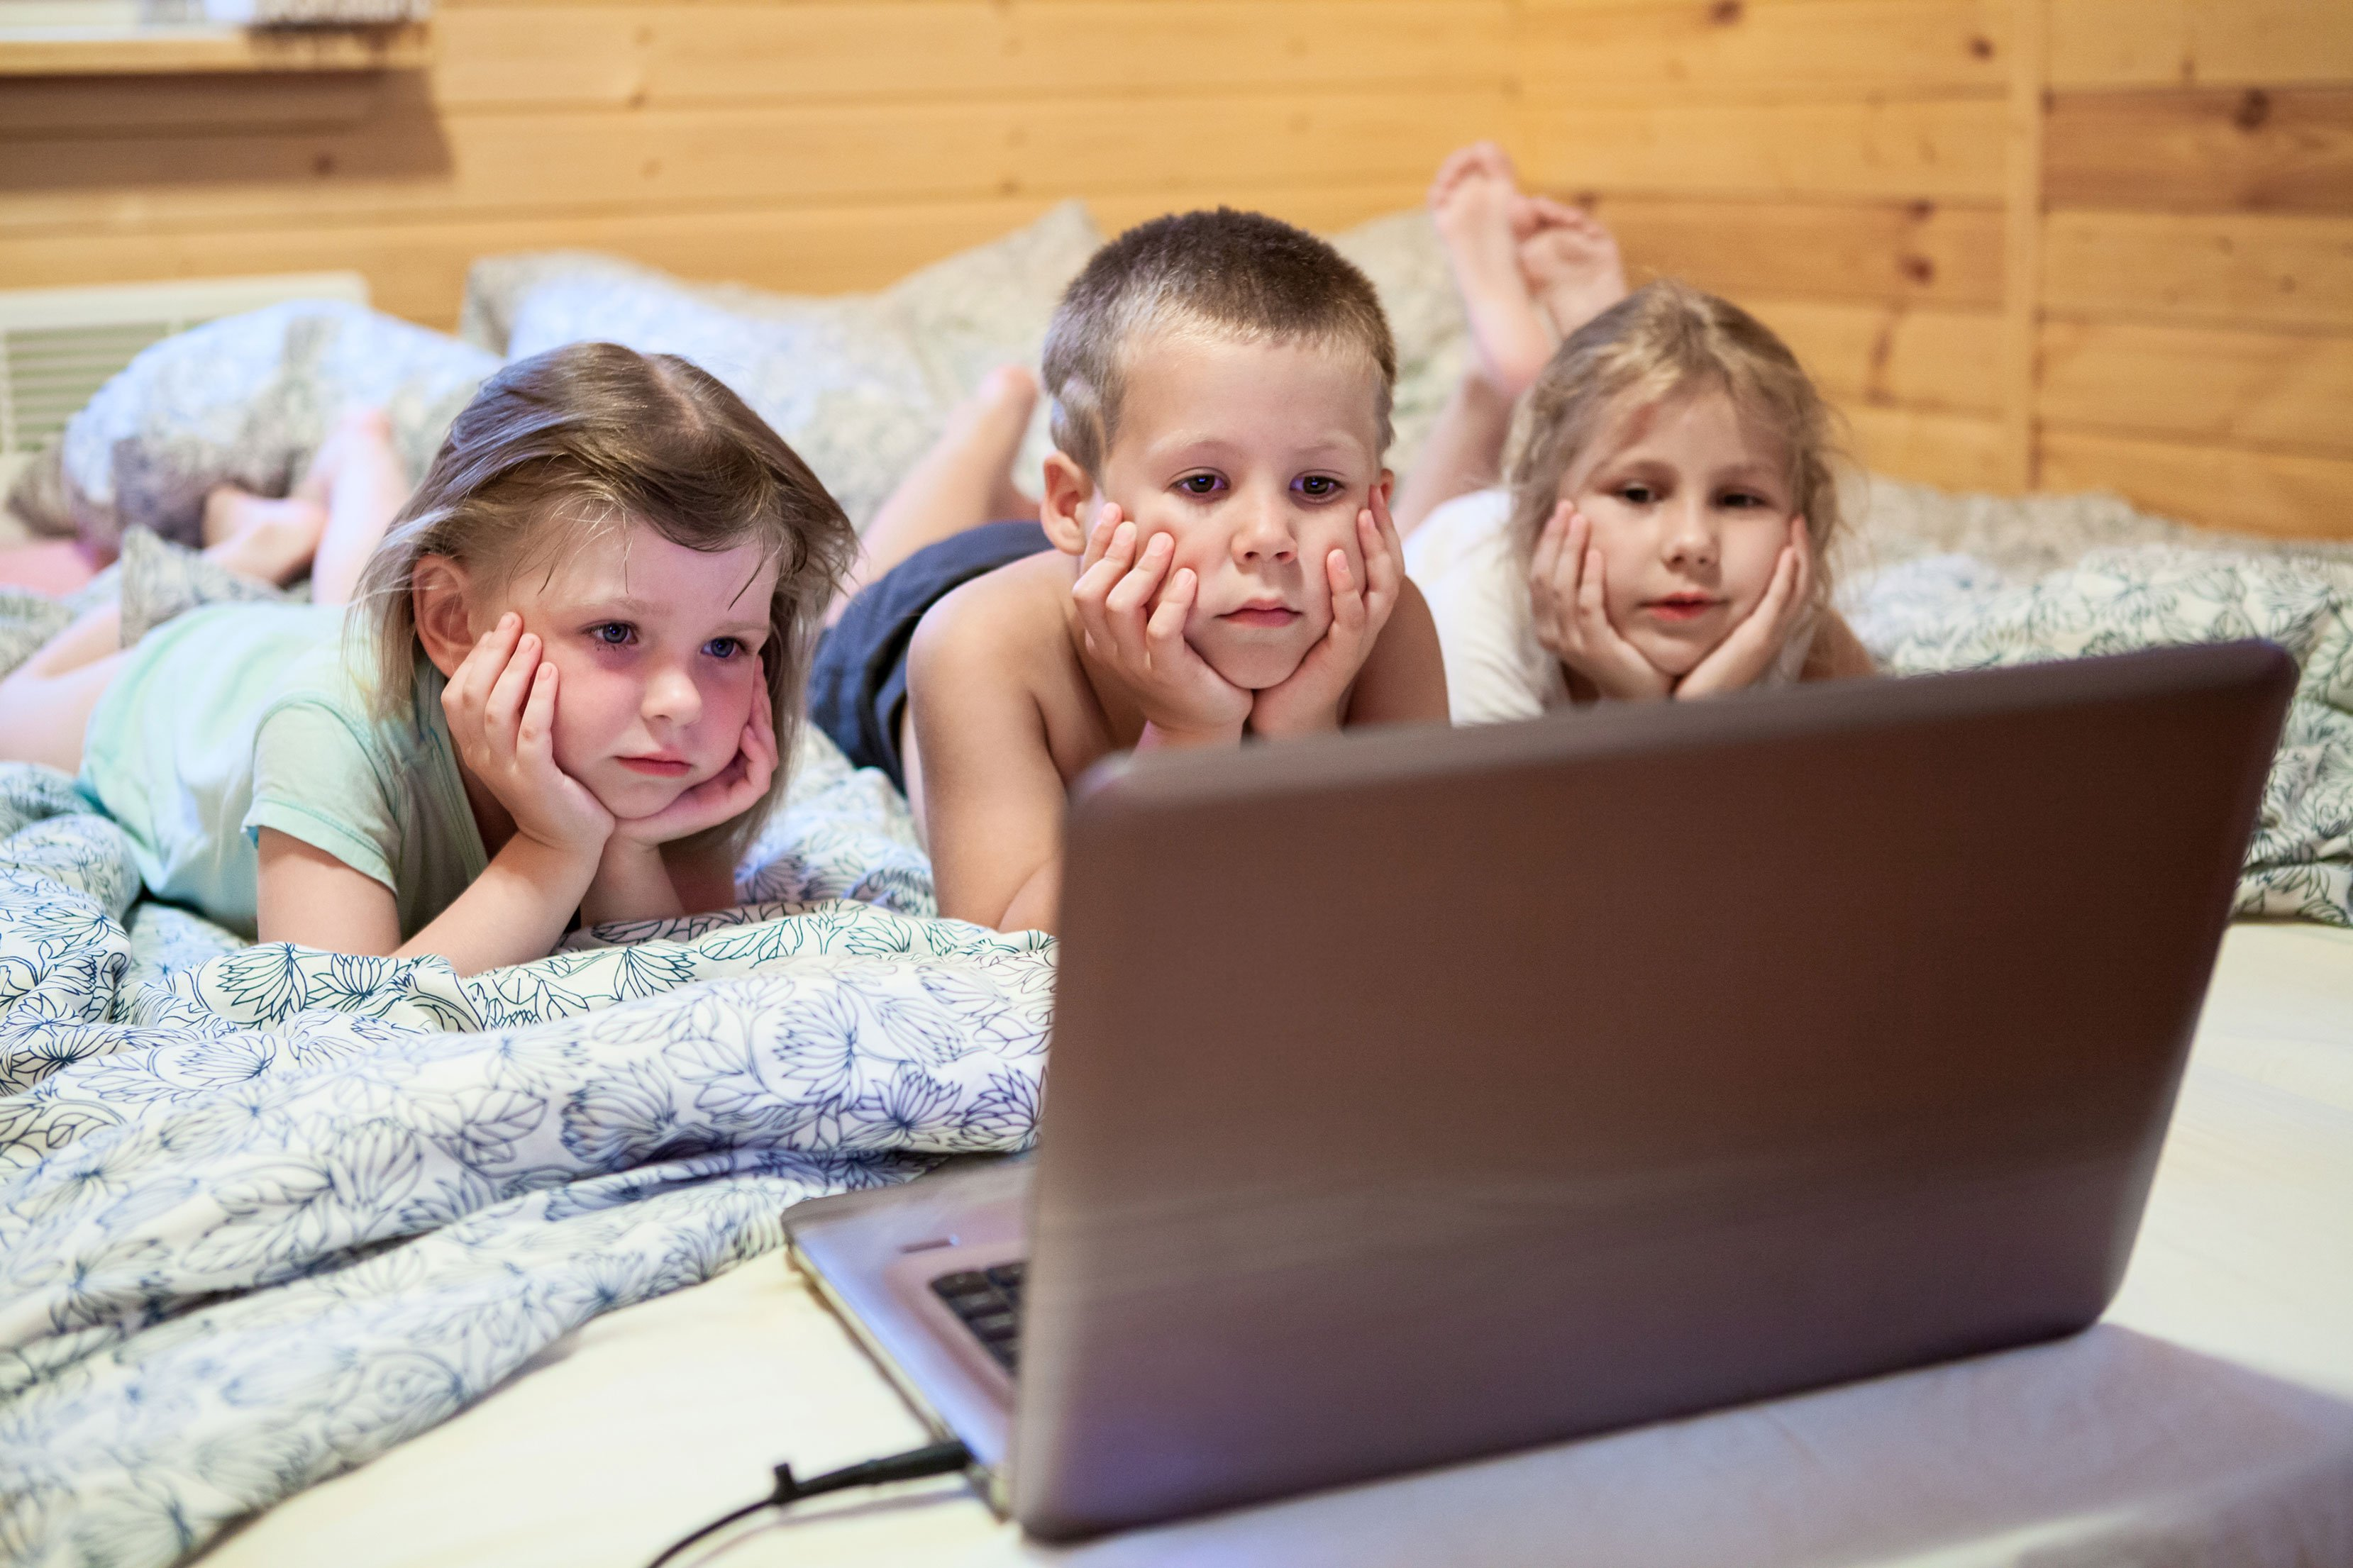 Kids From Overuse Of Technology_3